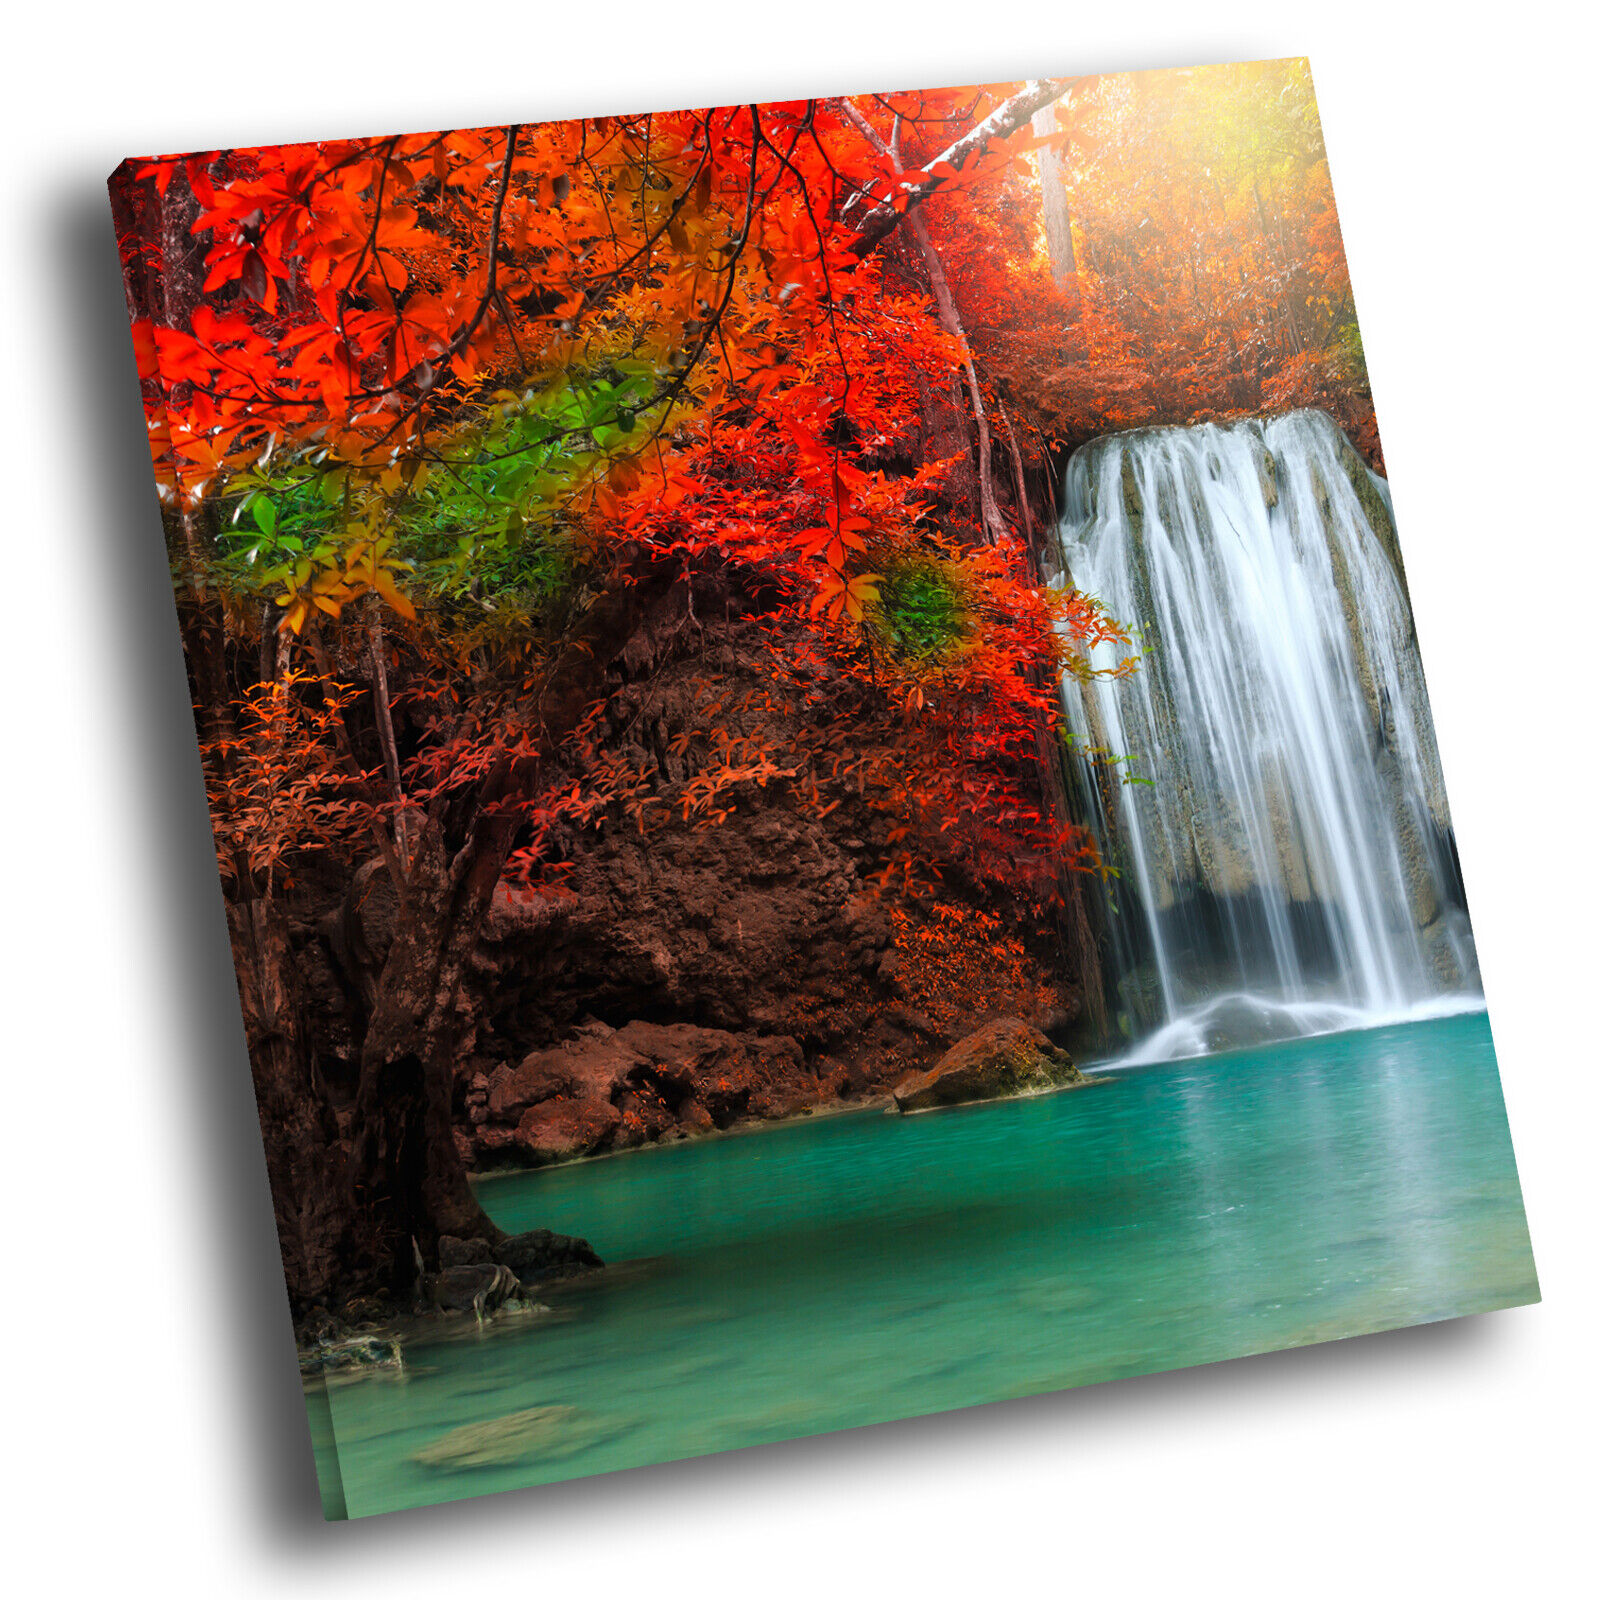 rot Tree Forest Waterfall Square Scenic Canvas Wall Art Large Picture Print